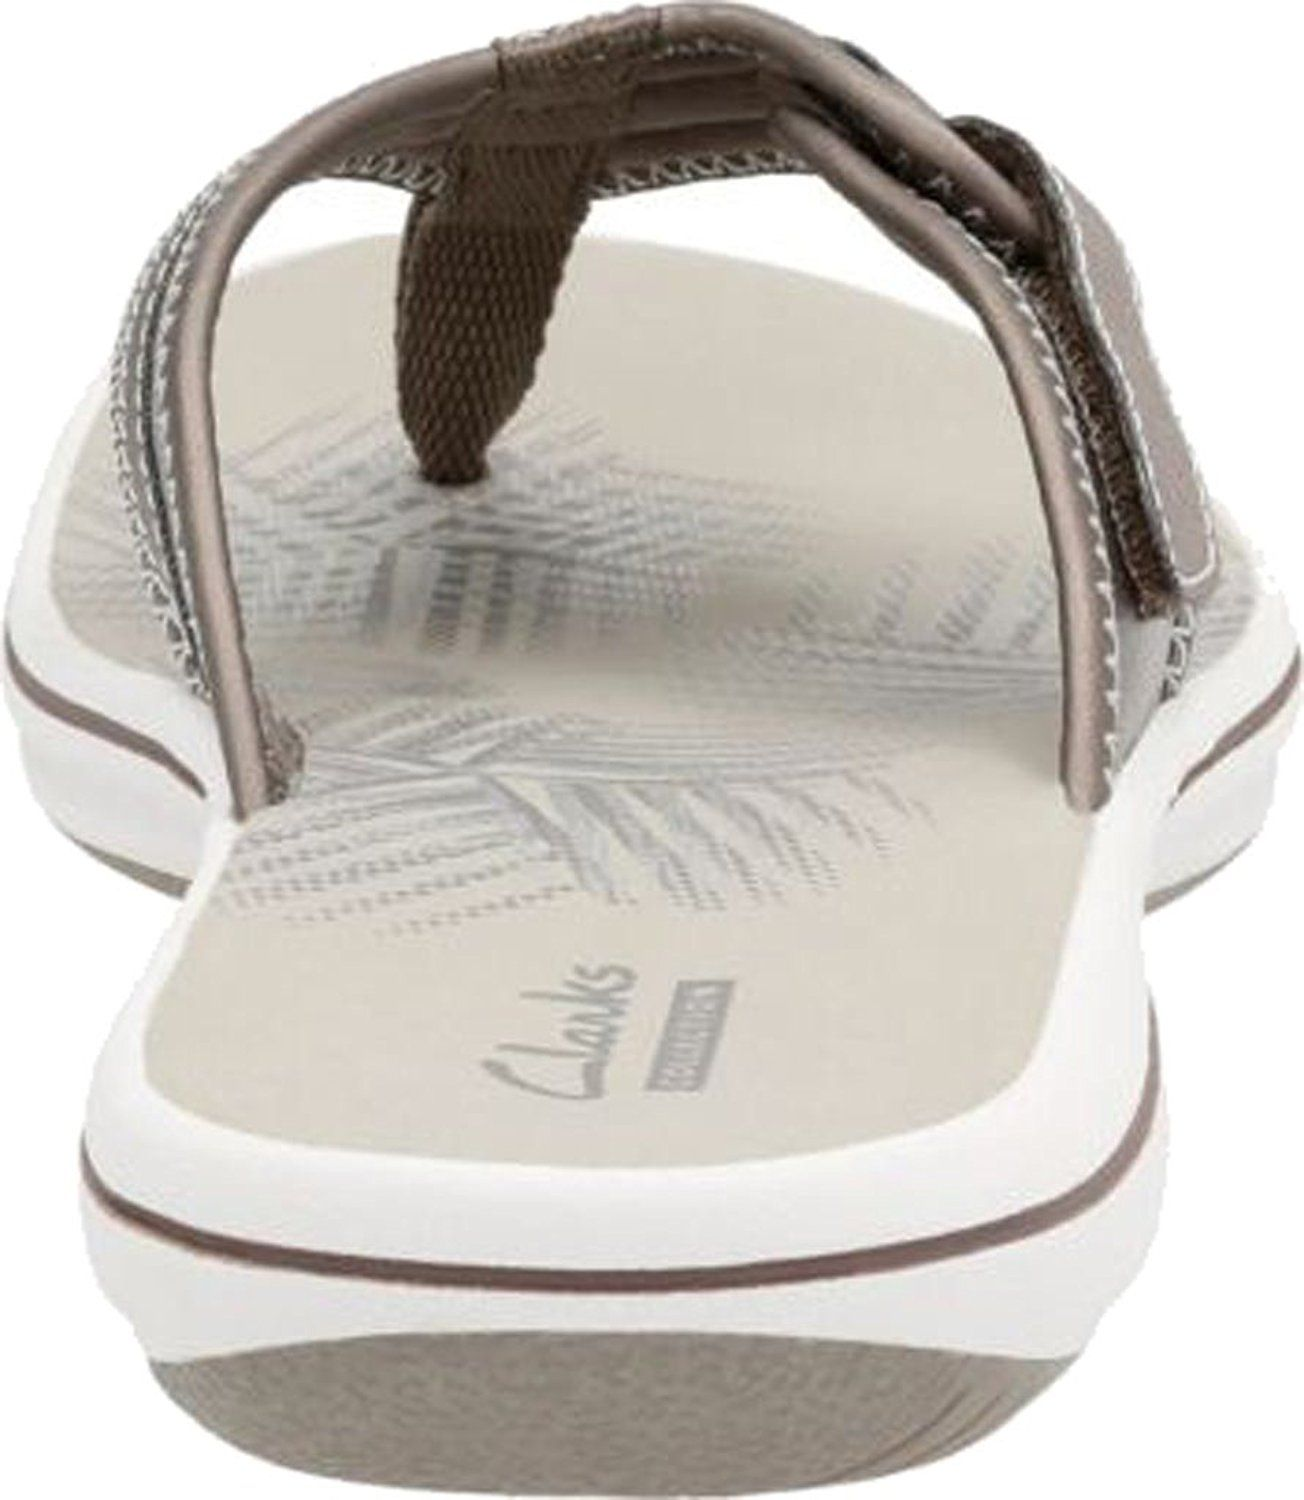 7a9ccb18e2f0bc Clarks Women s Breeze Mila Thong Sandal   Read more at the image link.  (This is an affiliate link)  womenshoes